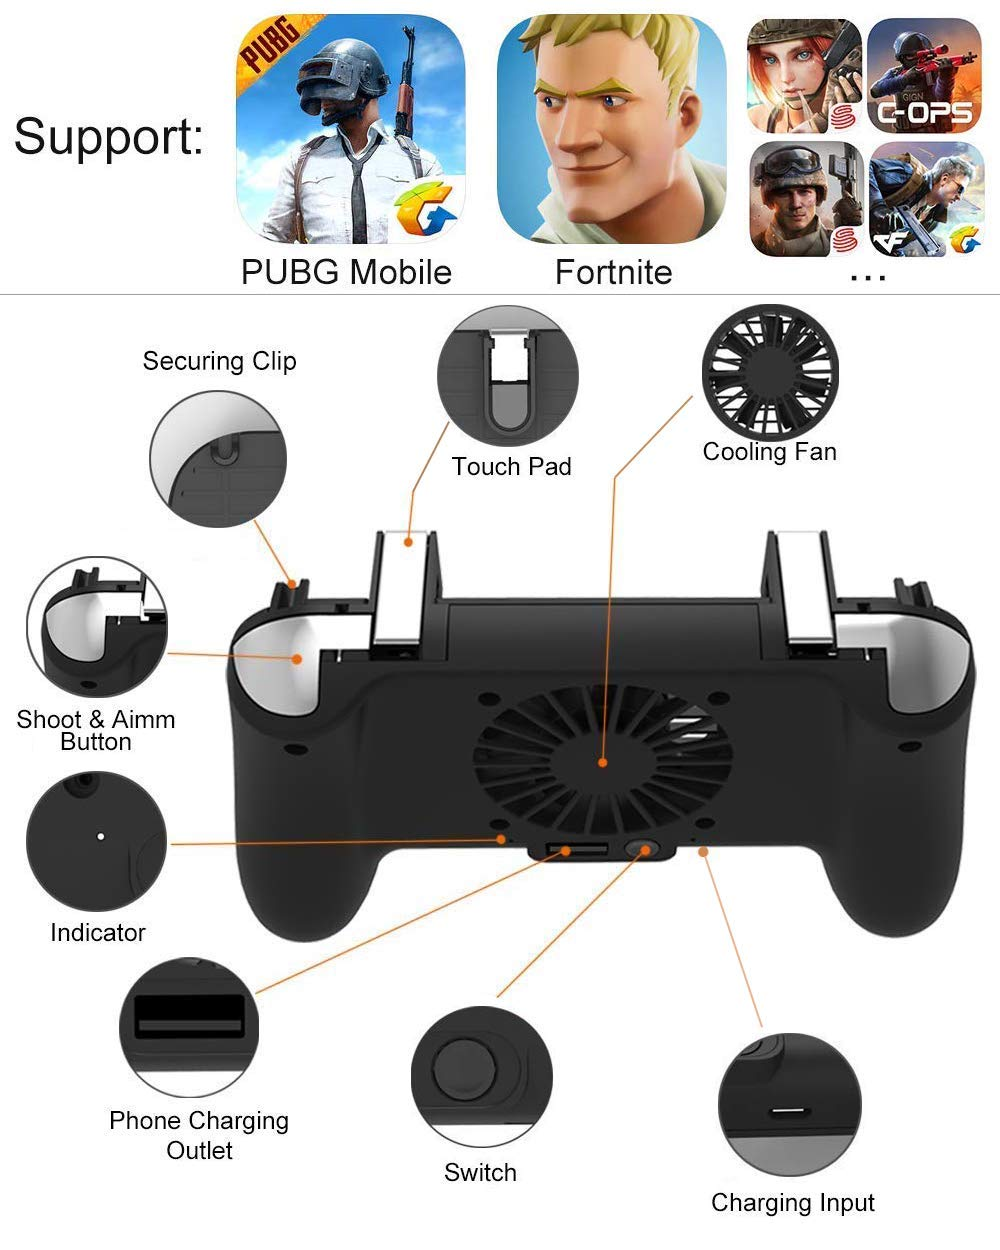 Mobile Game Controller [Upgrade Version] Mobile Gaming Trigger for PUBG/Fortnite/Rules of Survival Gaming Grip and Gaming Joysticks for 4.5-6.5inch Android iOS Phone by SVZIOOG (Image #4)